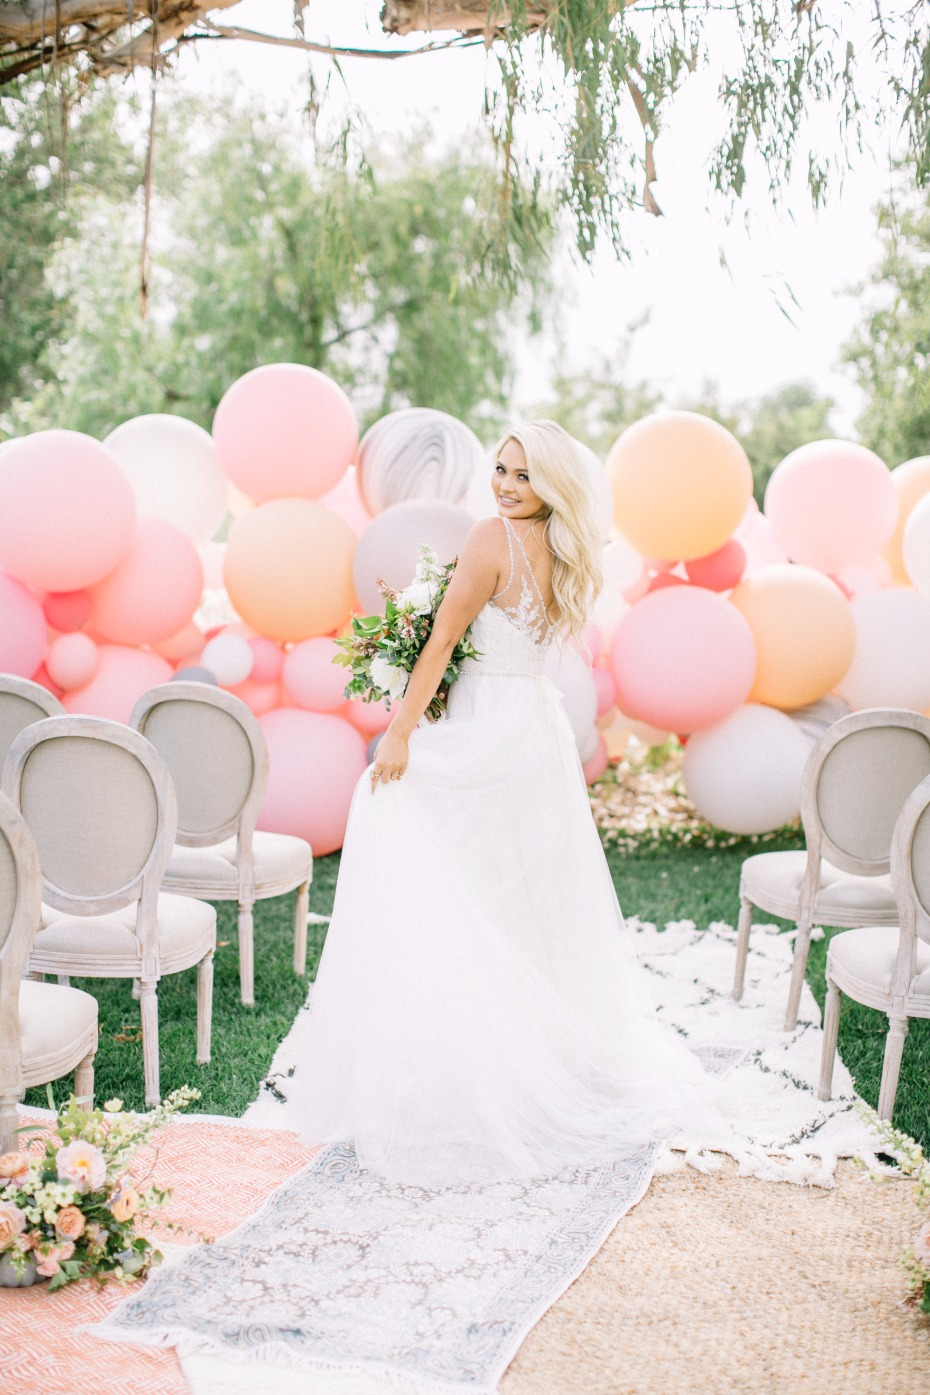 Gorgeous ceremony with balloon backdrop